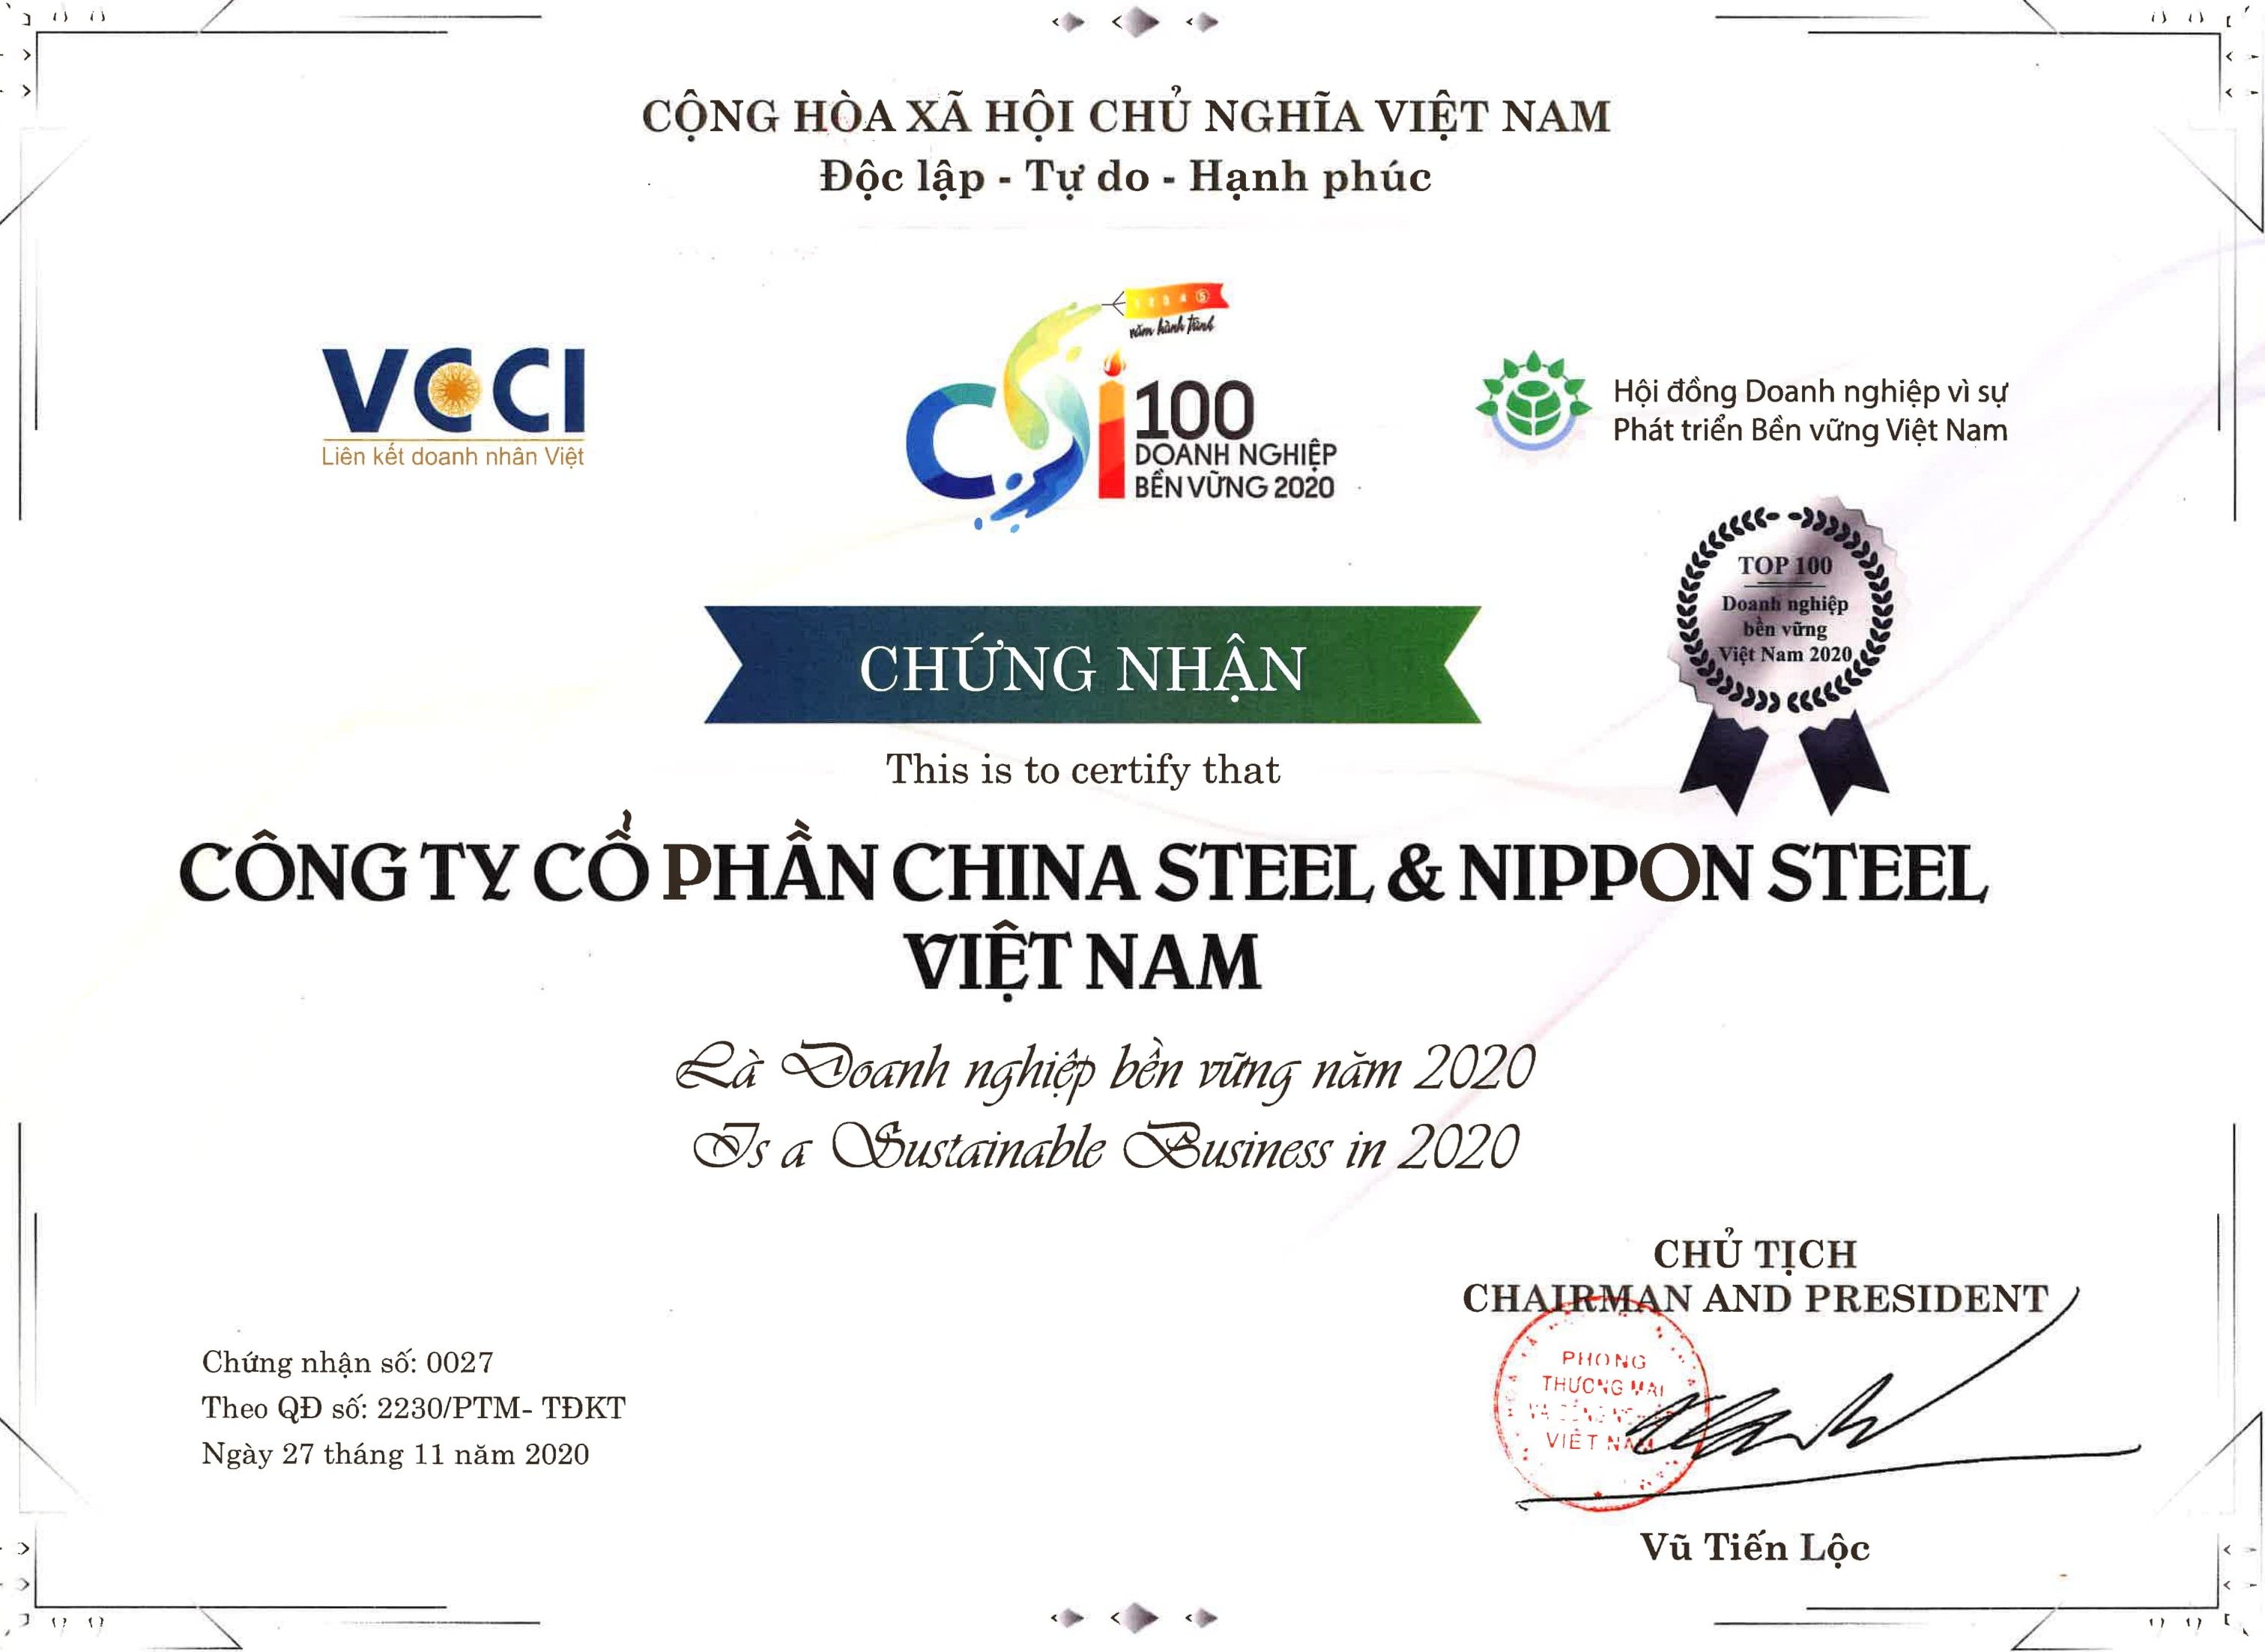 TOP 100 VIETNAM SUSTAINABLE ENTERPRISE IN 2020